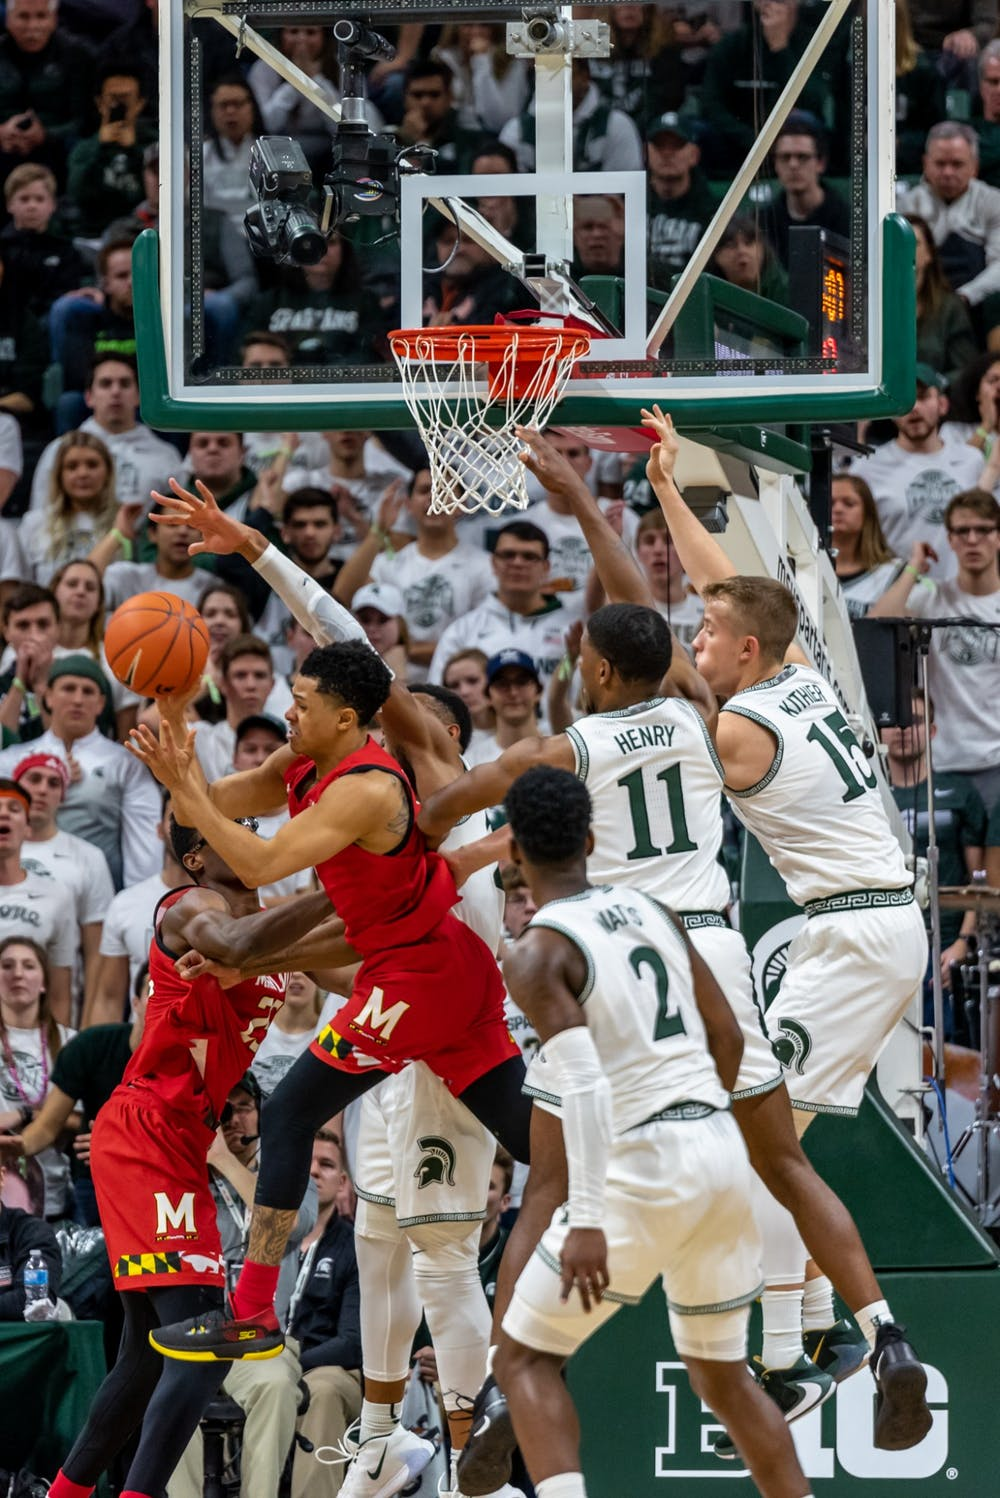 <p>Michigan State and Maryland players battle over a rebound. The Spartans fell to the Terrapins, 60-67, at the Breslin Student Events Center on Feb. 15, 2020. </p>